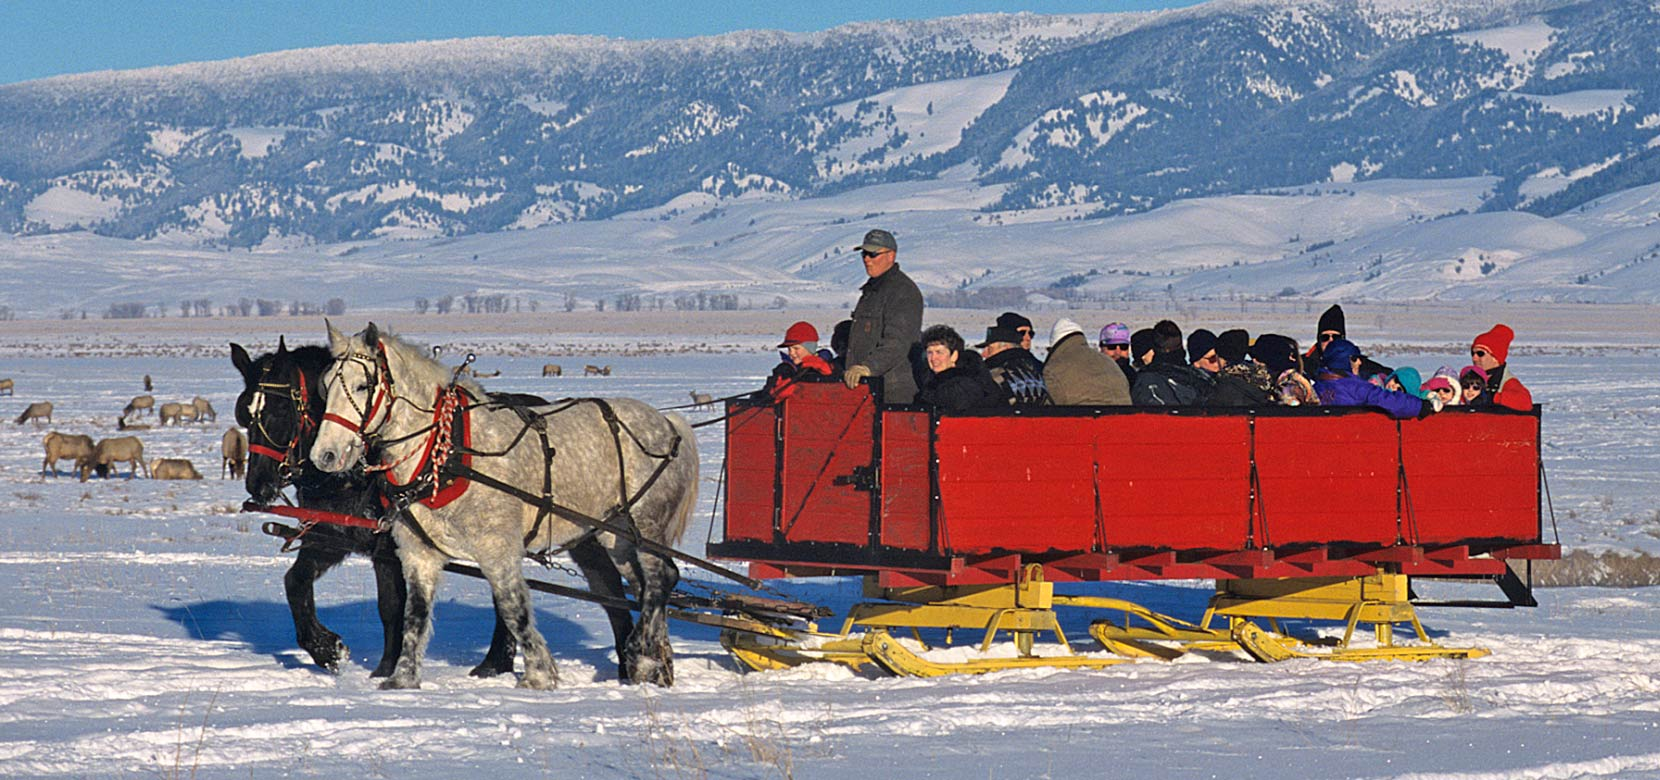 hORSE DRAWN SLEIGH RIDES IN JACKSON HOLE